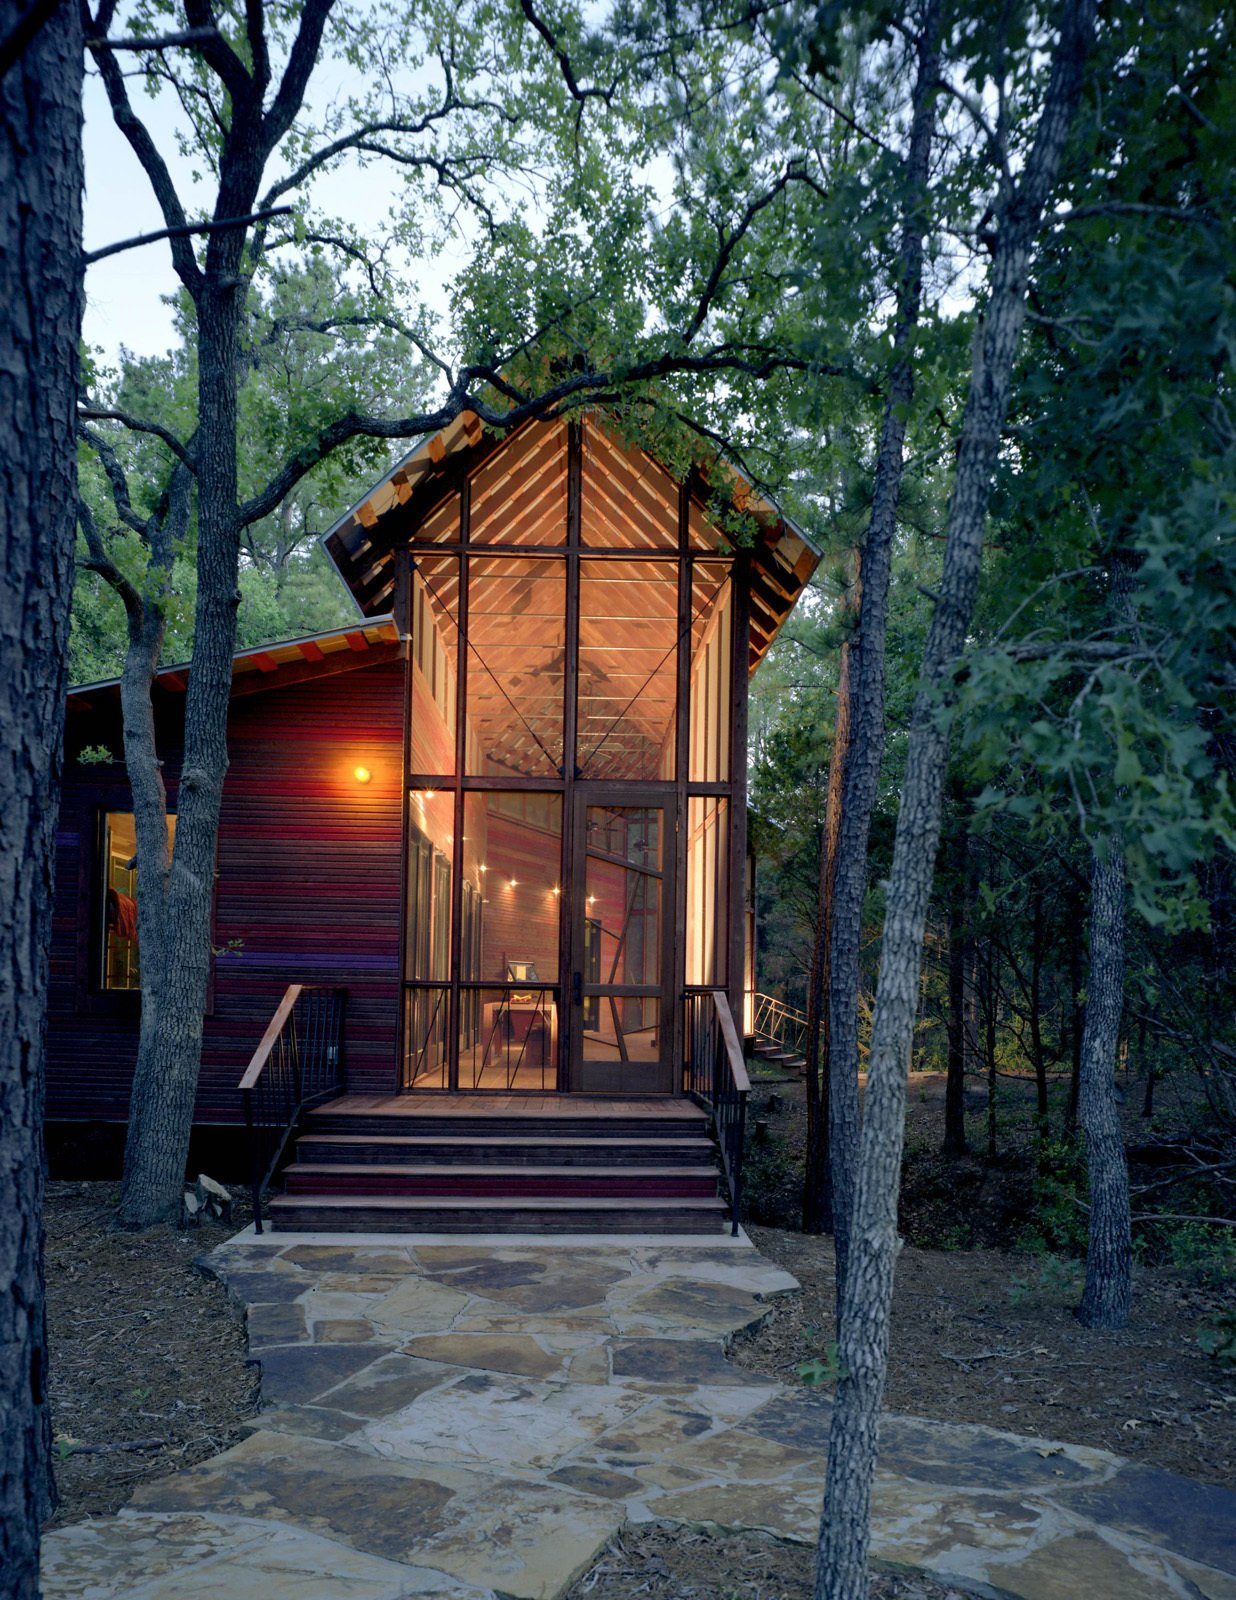 The architectural relationship between the bunkroom and porch, and the bunkhouse and the surrounding forest, is especially apparent at dusk, when the building reads as a kind of illuminated lantern.  Texas Bunkhouse by Erika Heet